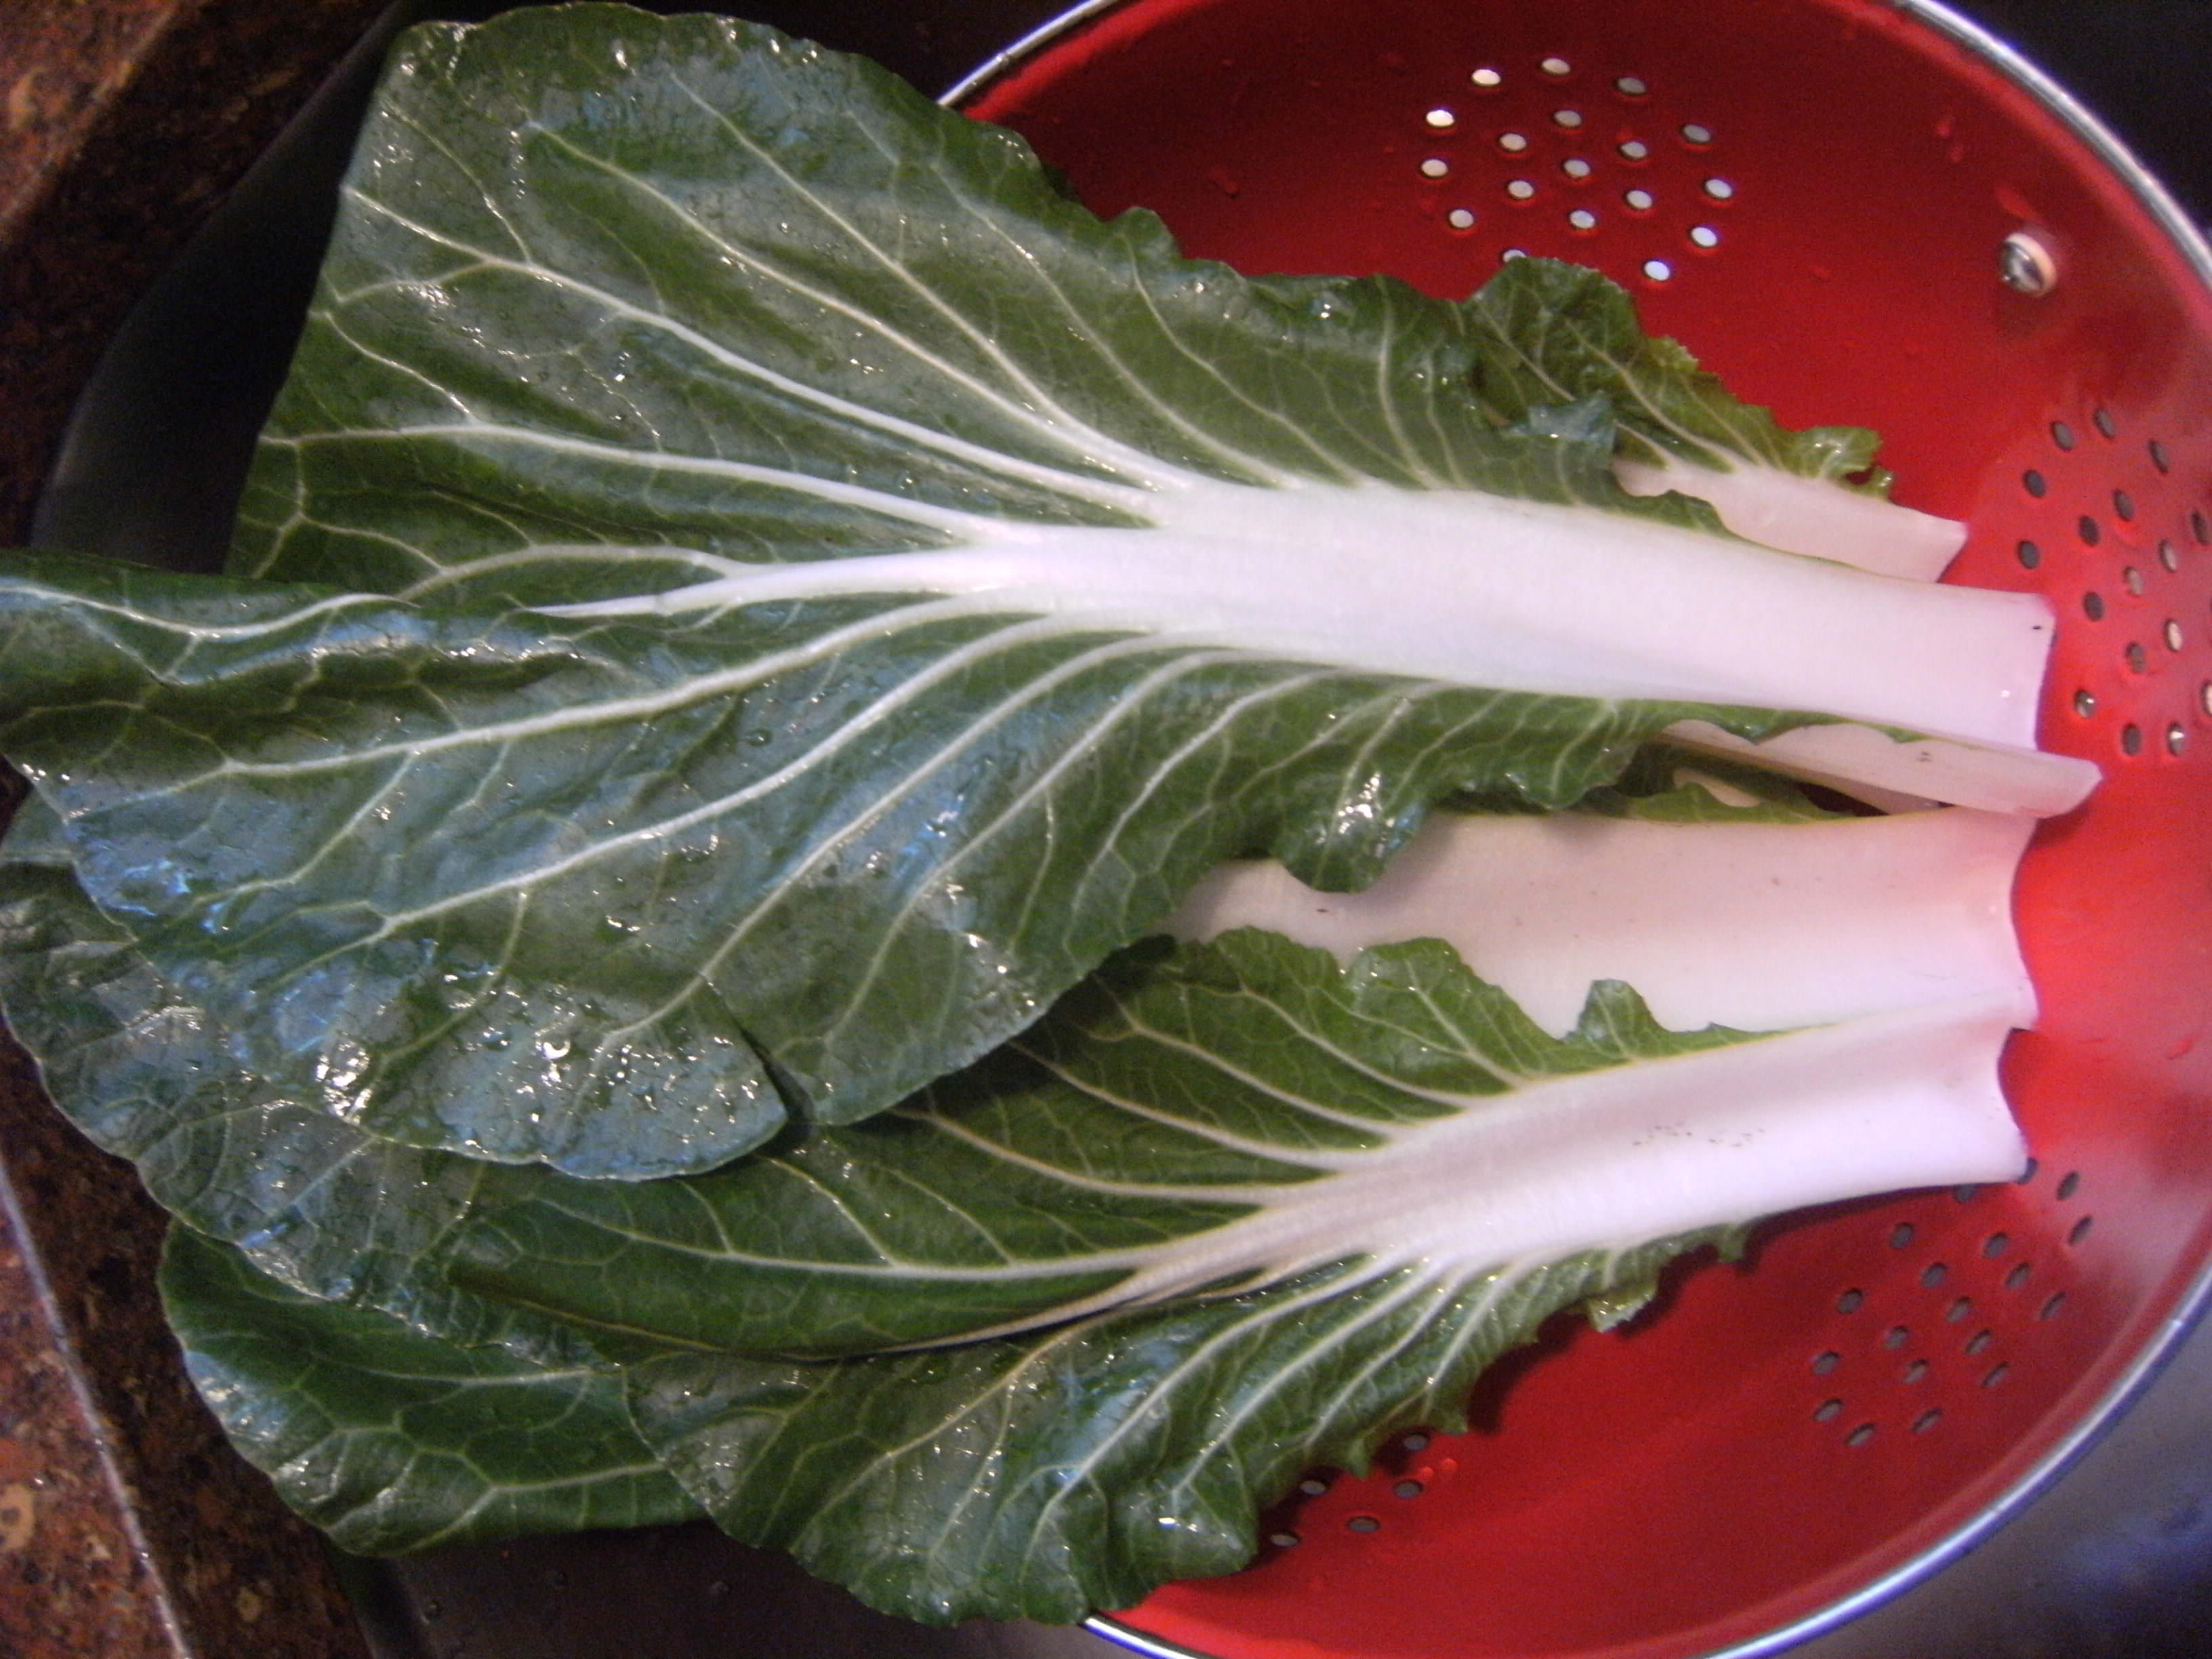 making Turkey Meatball Soup - cleaning bok choy leaves